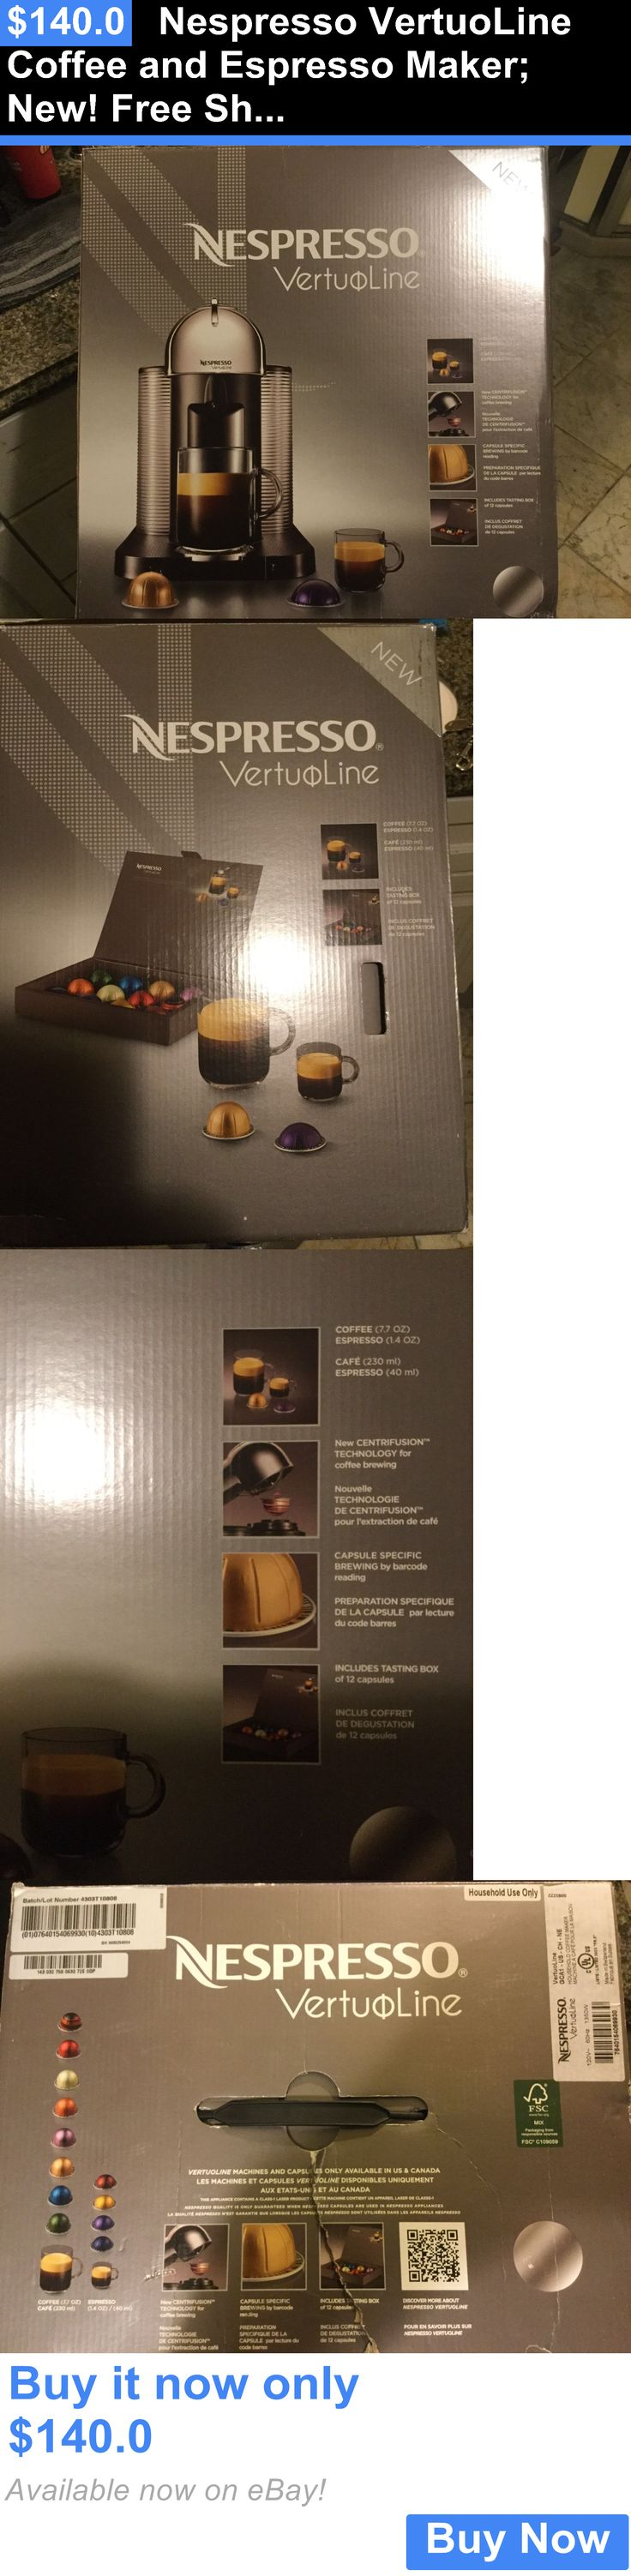 Small Kitchen Appliances: Nespresso Vertuoline Coffee And Espresso Maker: New! Free Shipping! BUY IT NOW ONLY: $140.0